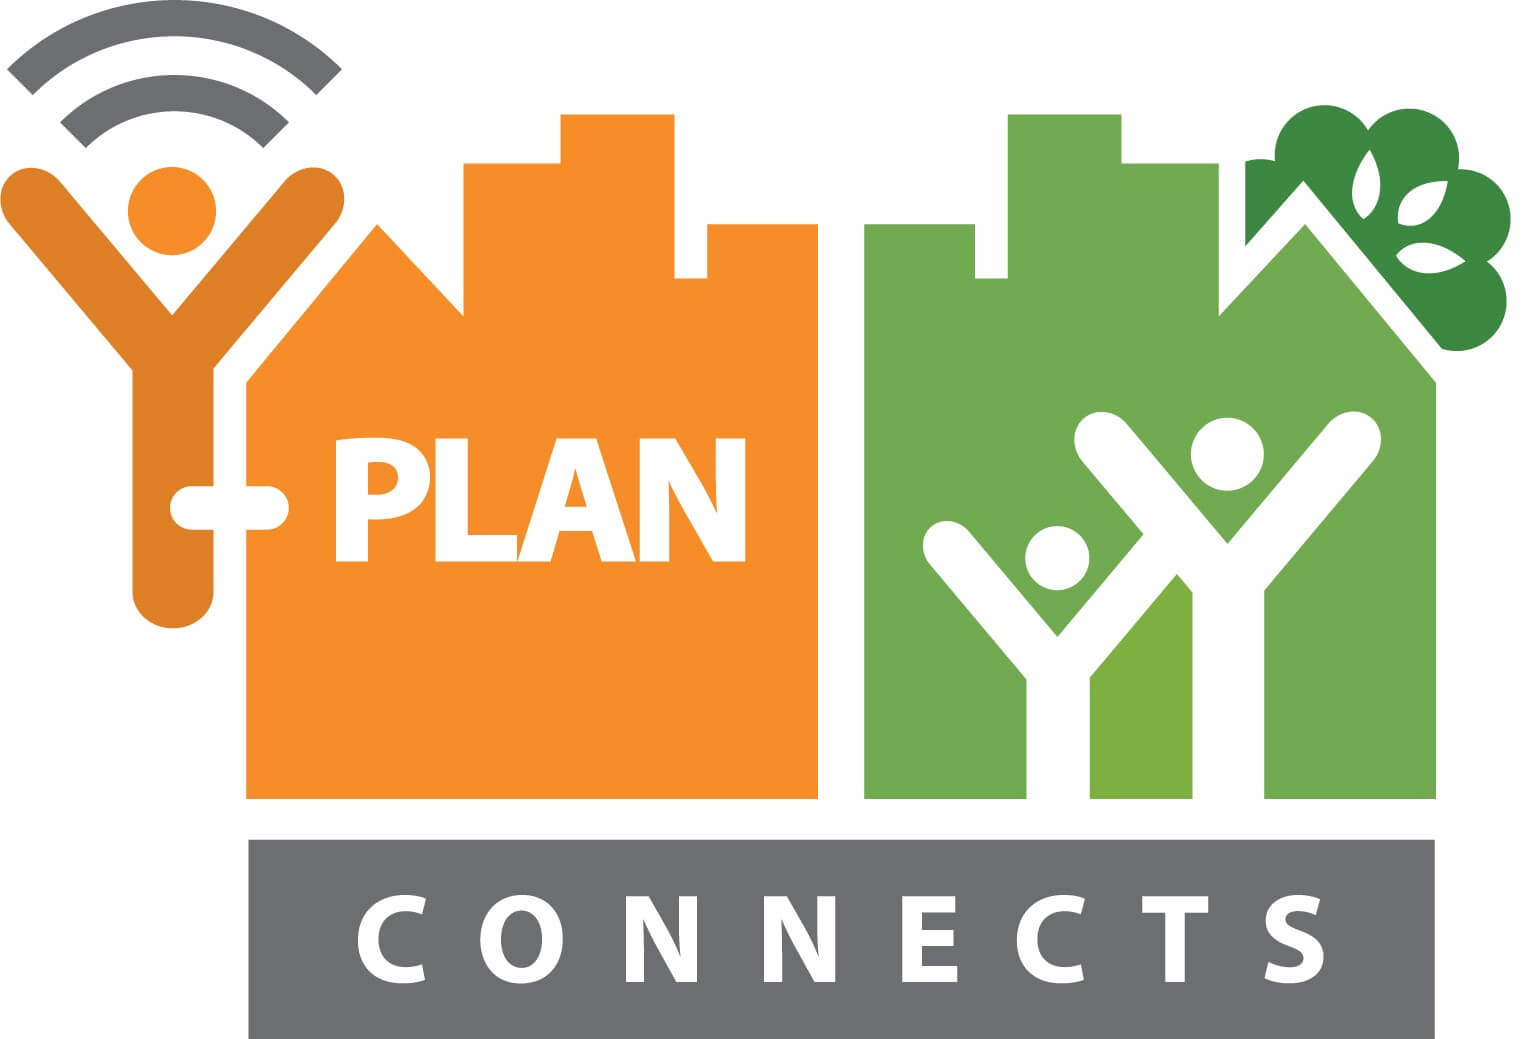 Y-PLAN Connects